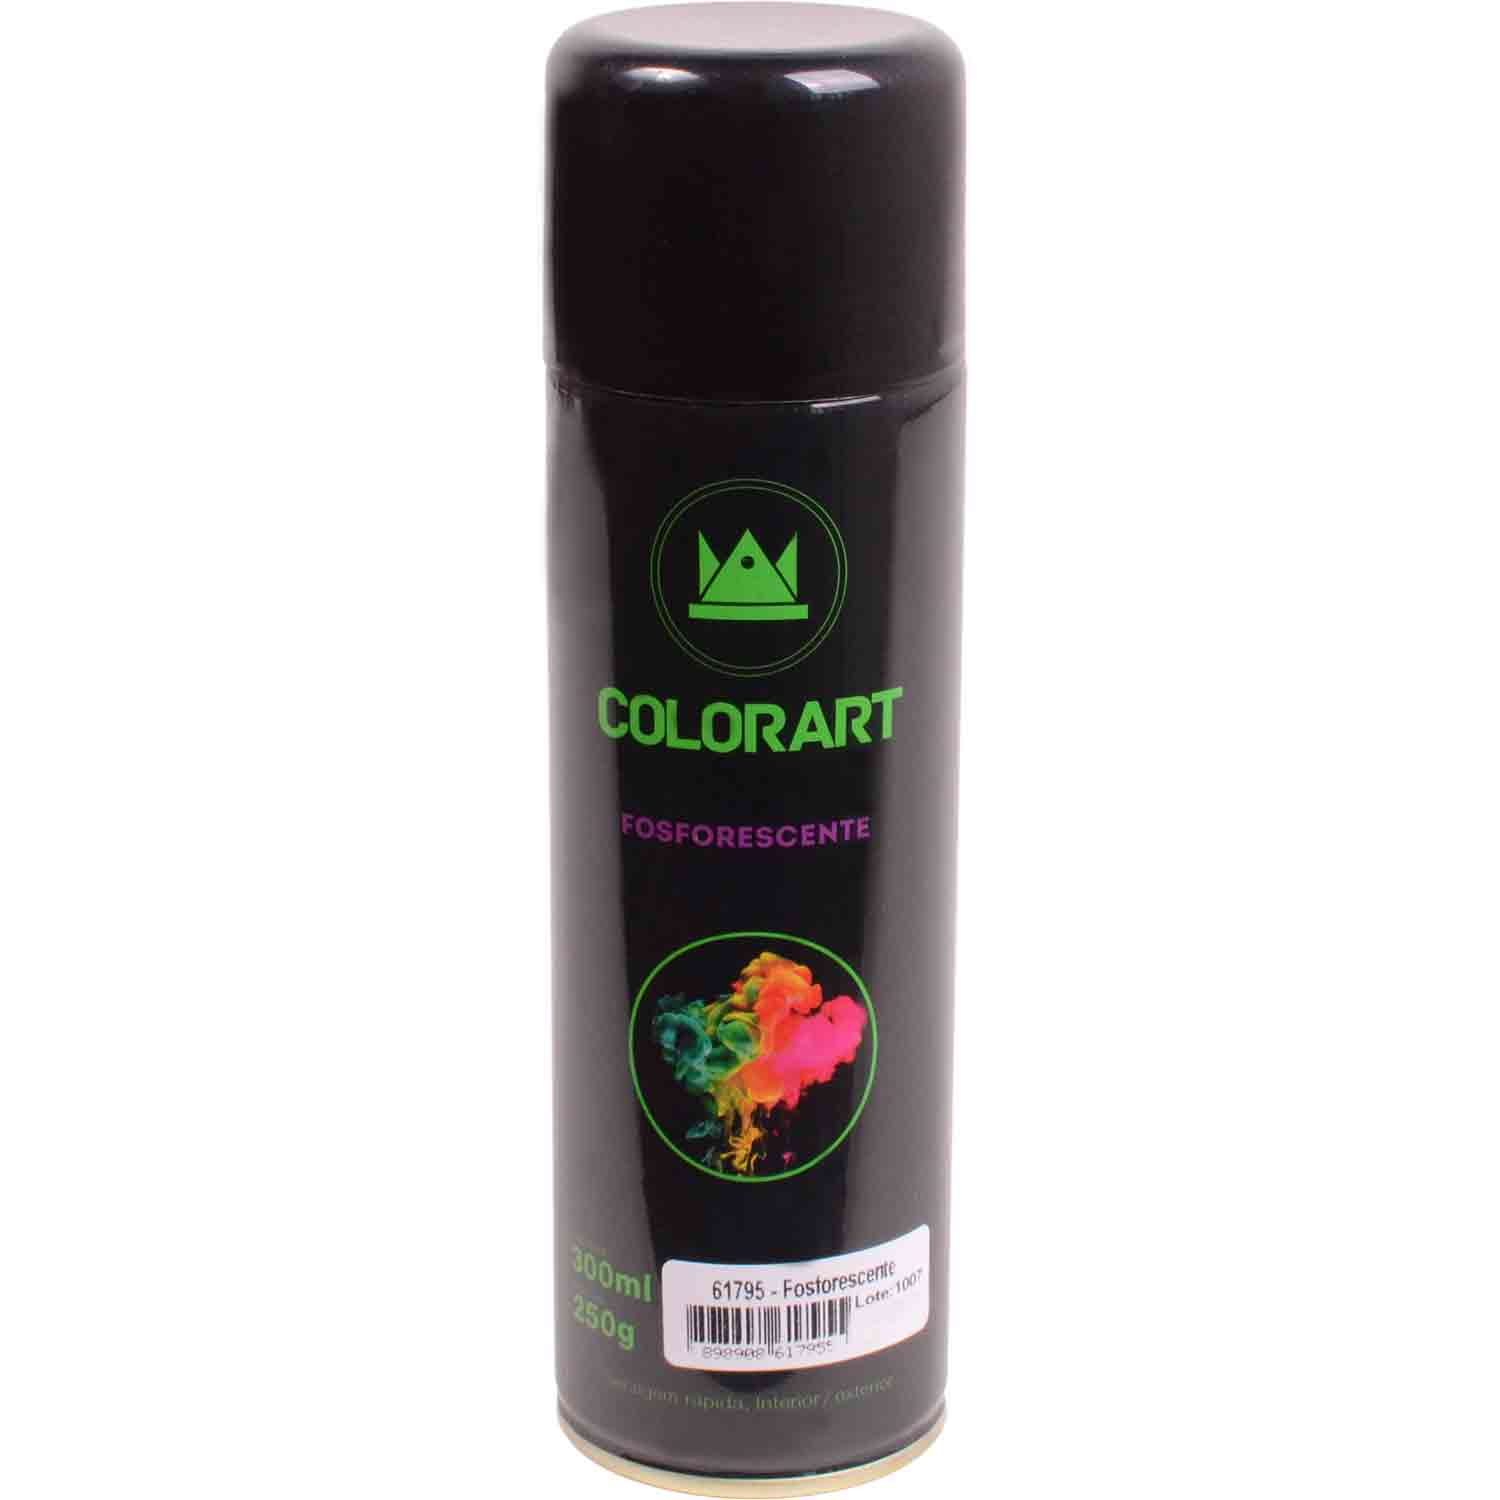 Tinta Fosforescente Spray 300ml (Tinta que Brilha no Escuro Neon)